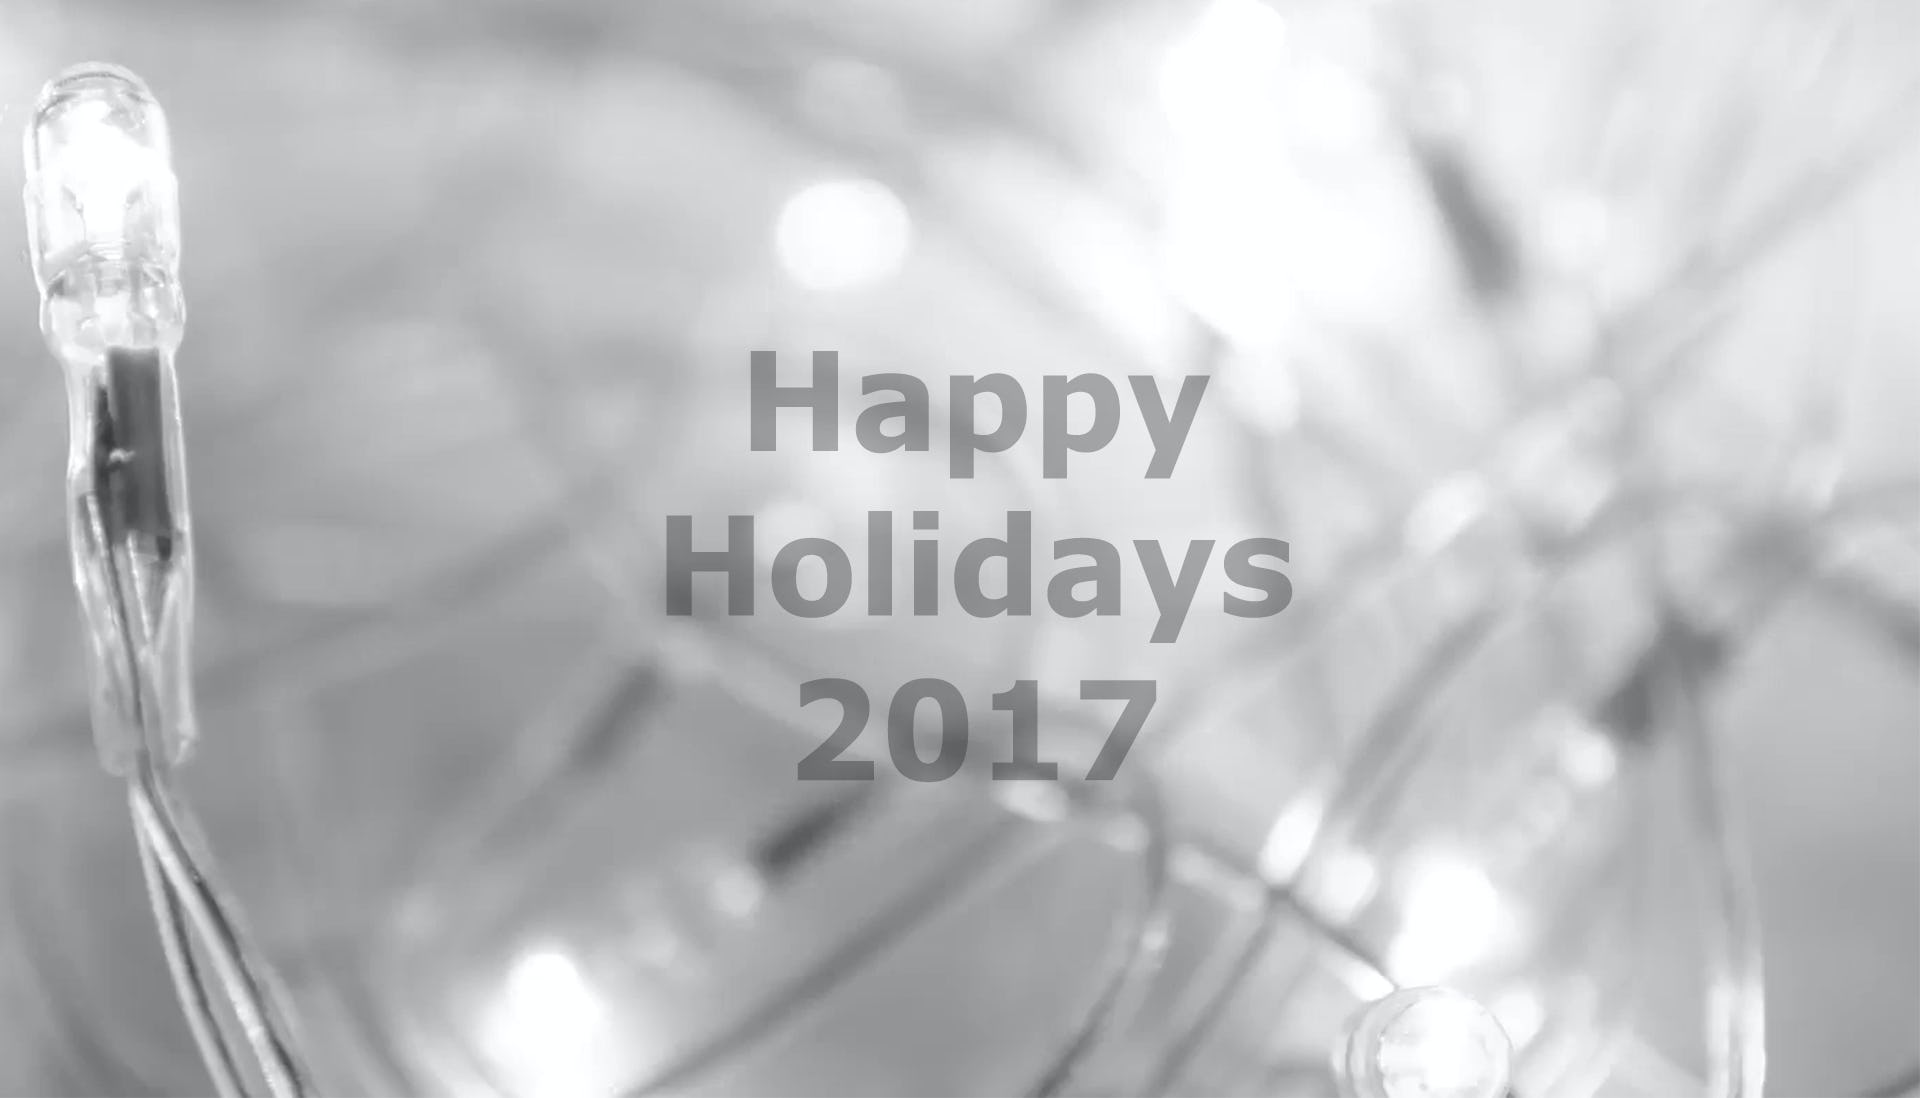 Happy holidays from rim 2017 thumbnail website